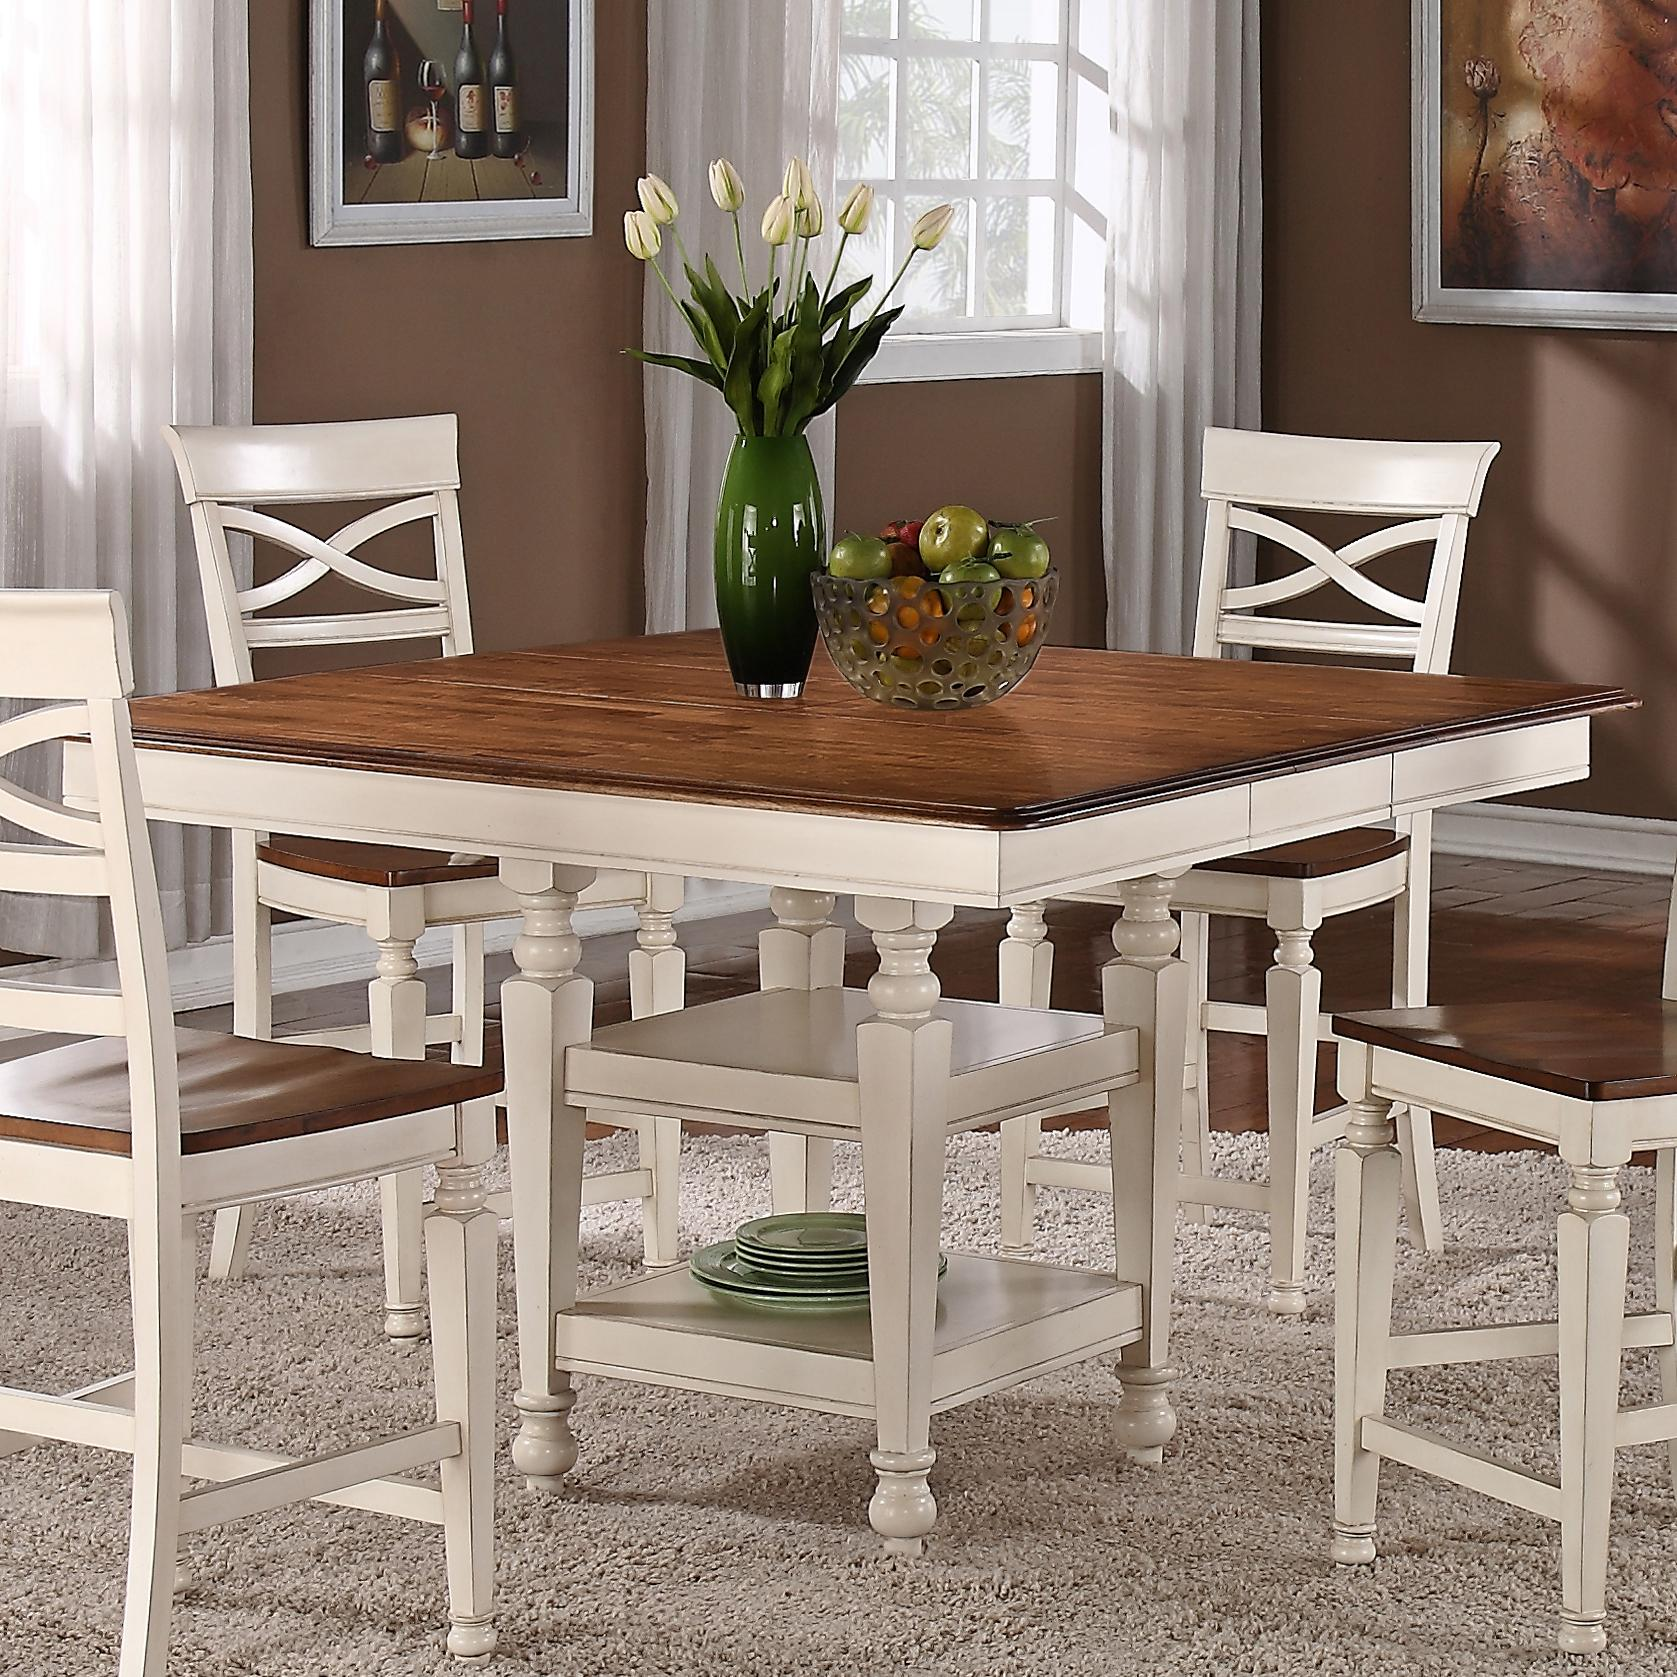 item counter height kitchen table Holland House Dining Square Top Counter Height Dining Table with Srorage Pedestal Base and 12 Butterfly Leaf